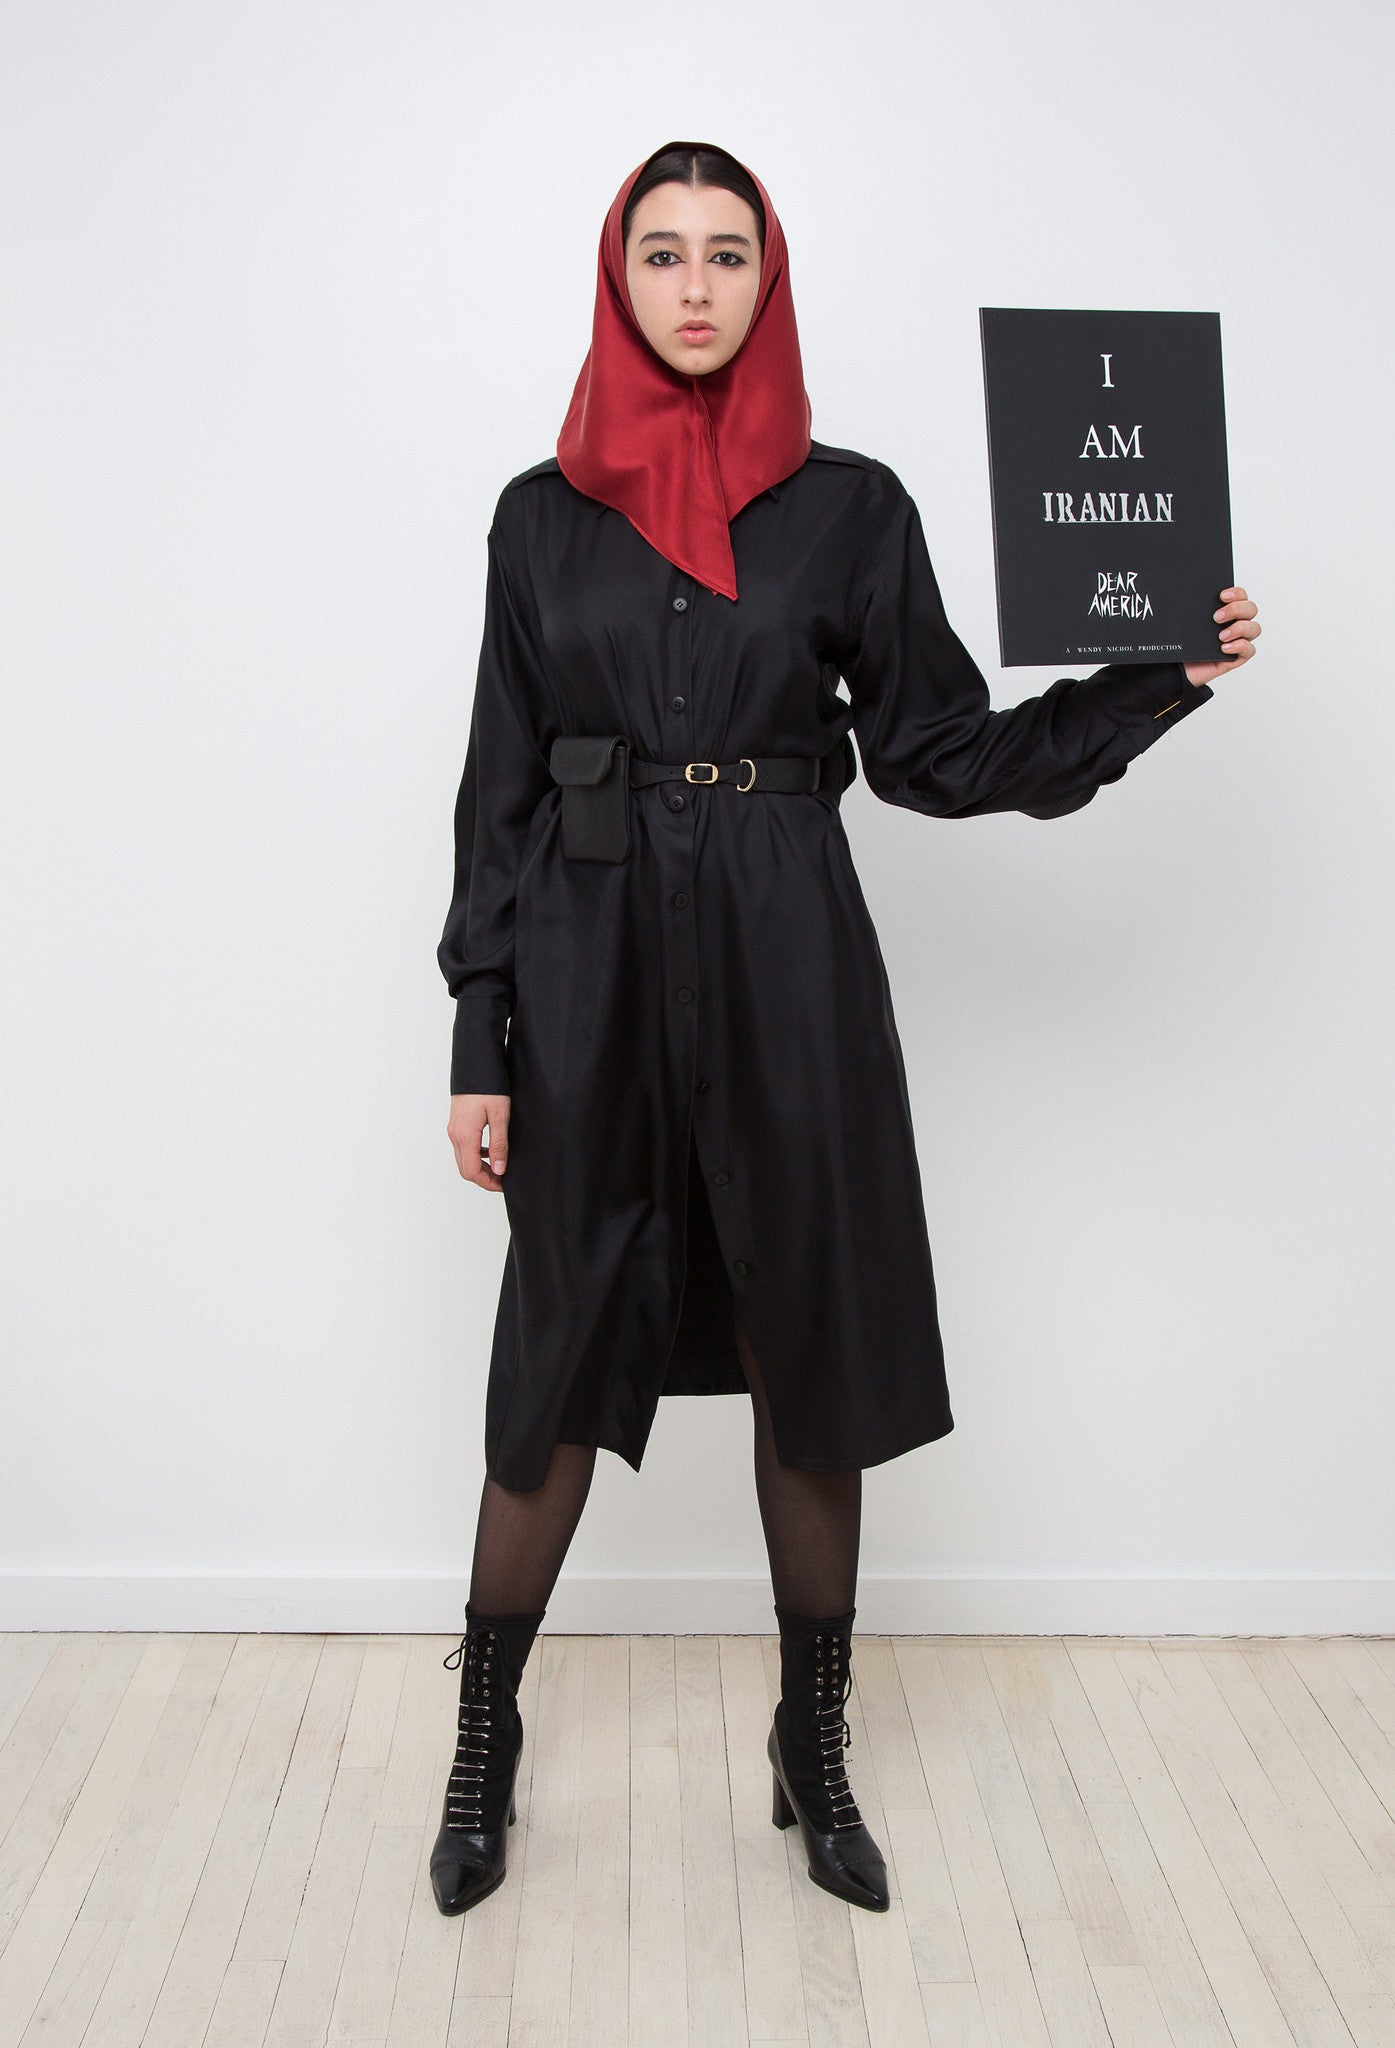 Sofia G. Model Wendy Nichol AW17 Clothing Fashion Anti Fascist Runway Show Dear America Handmade in NYC New York City Protest I AM Silk Shirt Dress Long Sleeve Blouse buttons Silk Head Scarf Chador Hijab